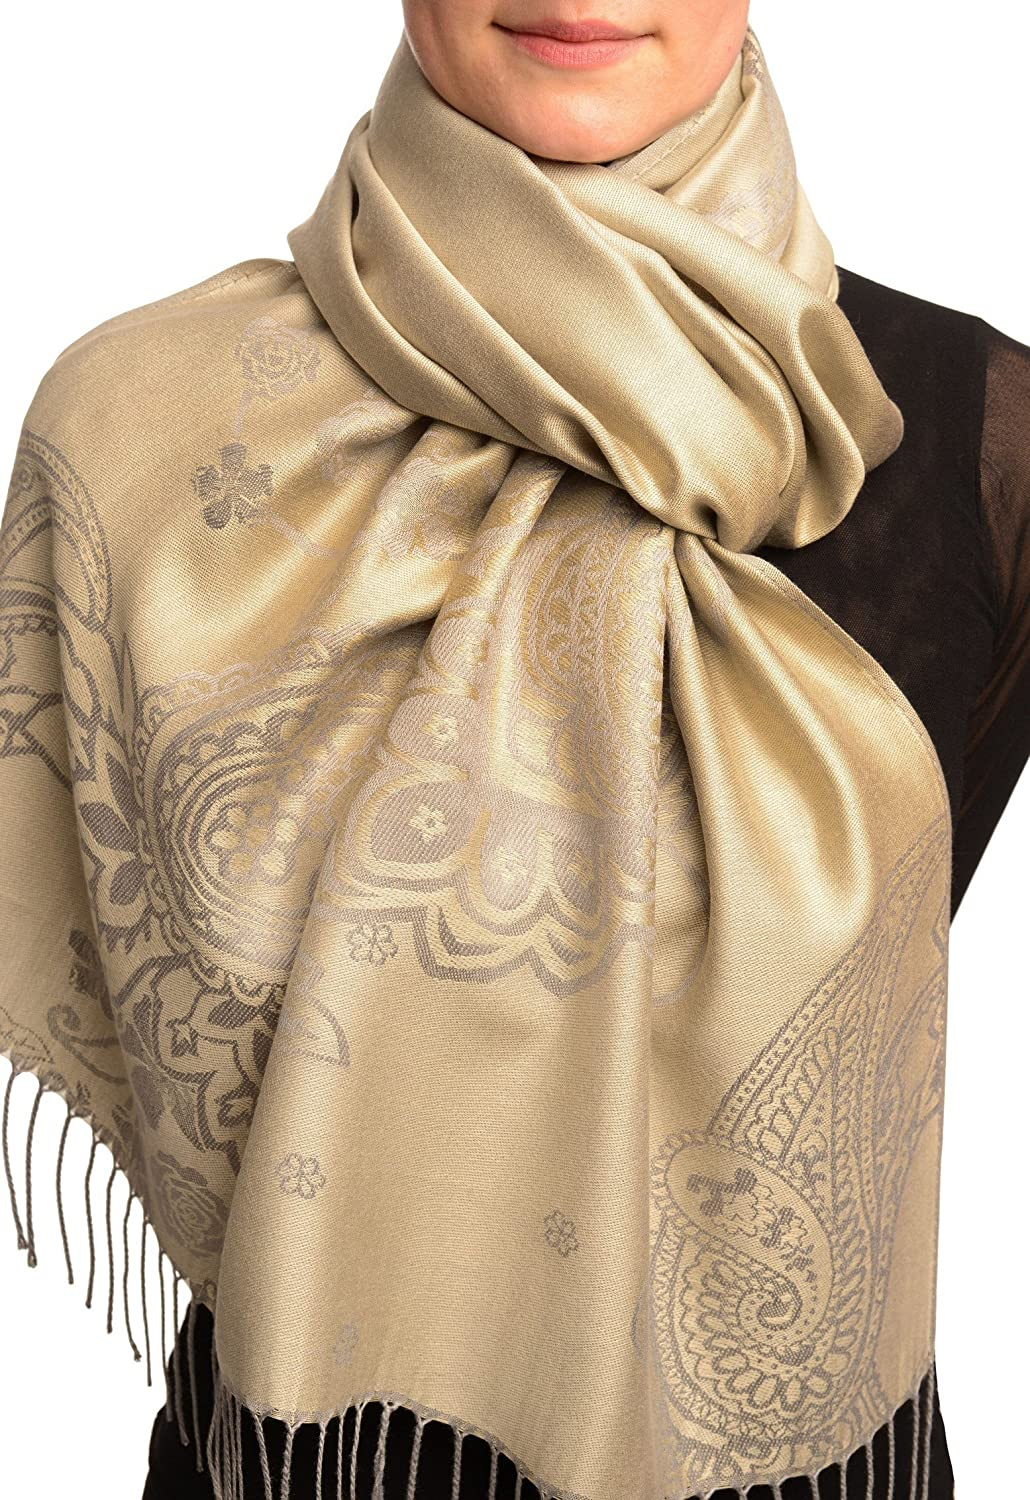 Paisley & Roses On Grey Pashmina Feel With Tassels - Scarf